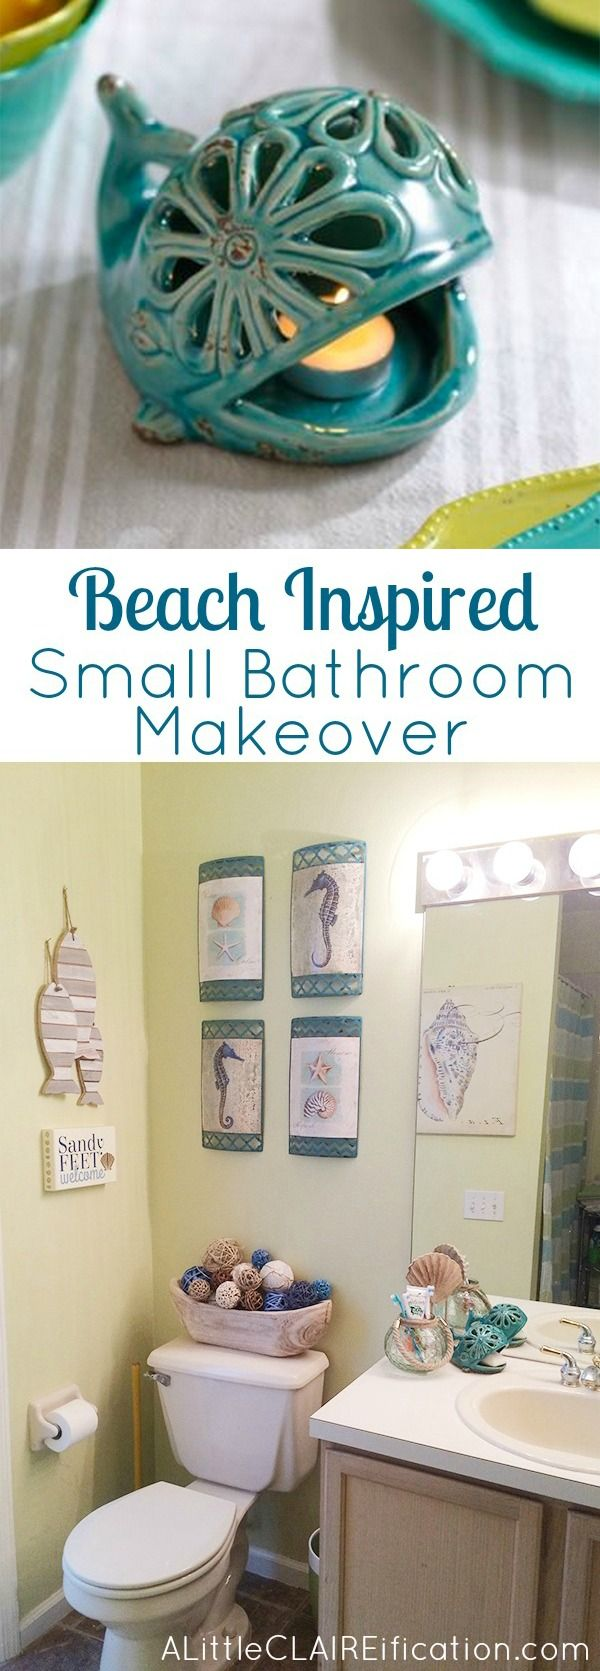 Beach themed bathroom diy ideas beach theme bathroom - Ocean themed bathroom accessories ...